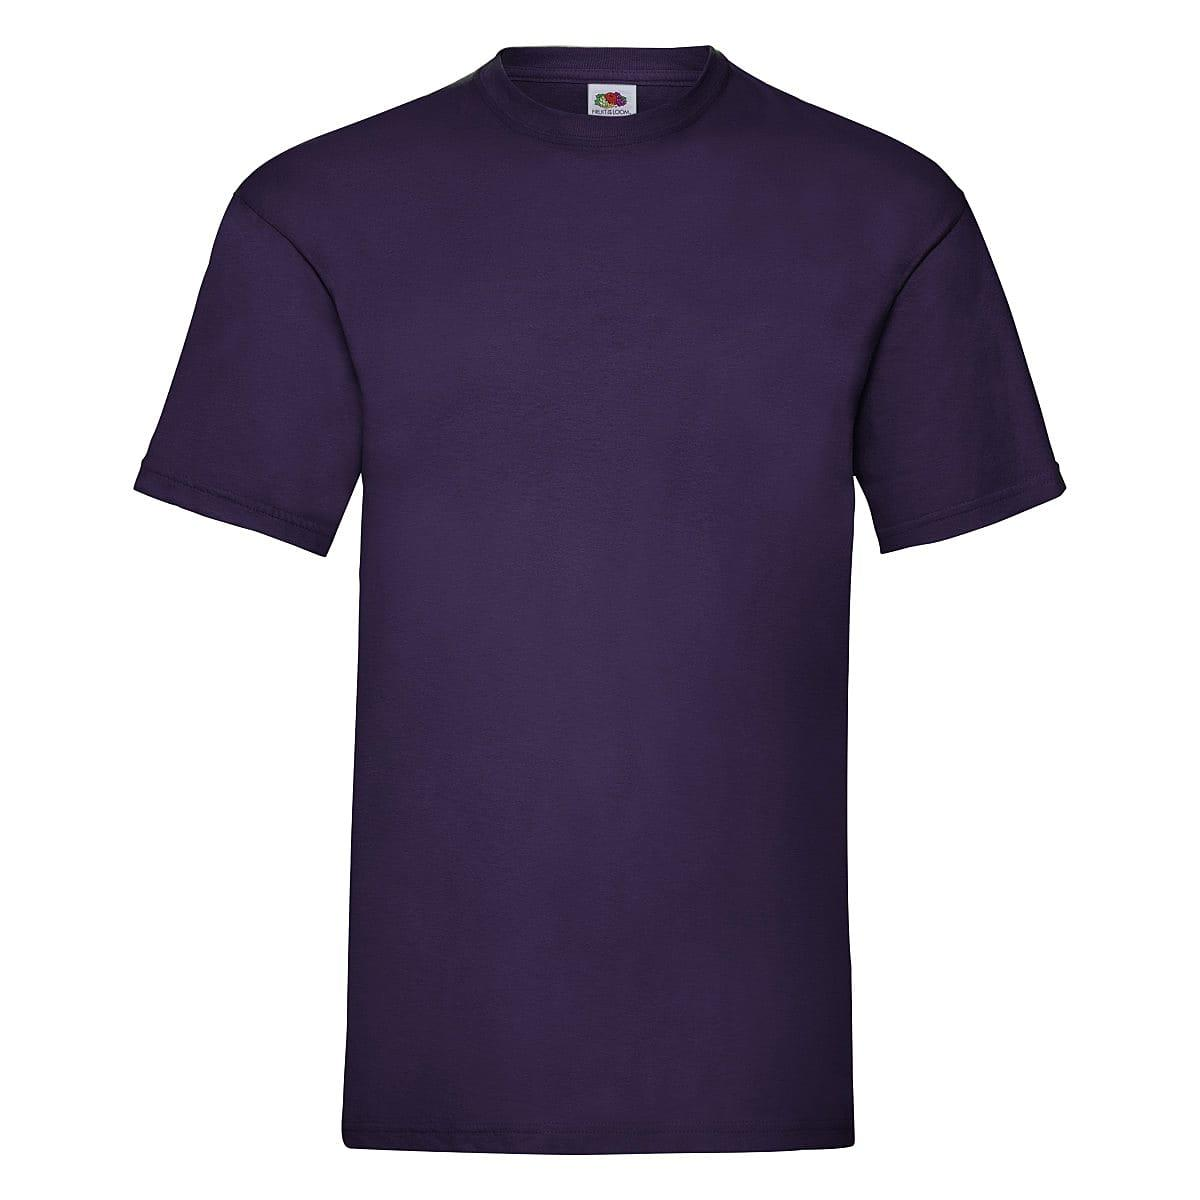 Fruit Of The Loom Valueweight T-Shirt in Purple (Product Code: 61036)